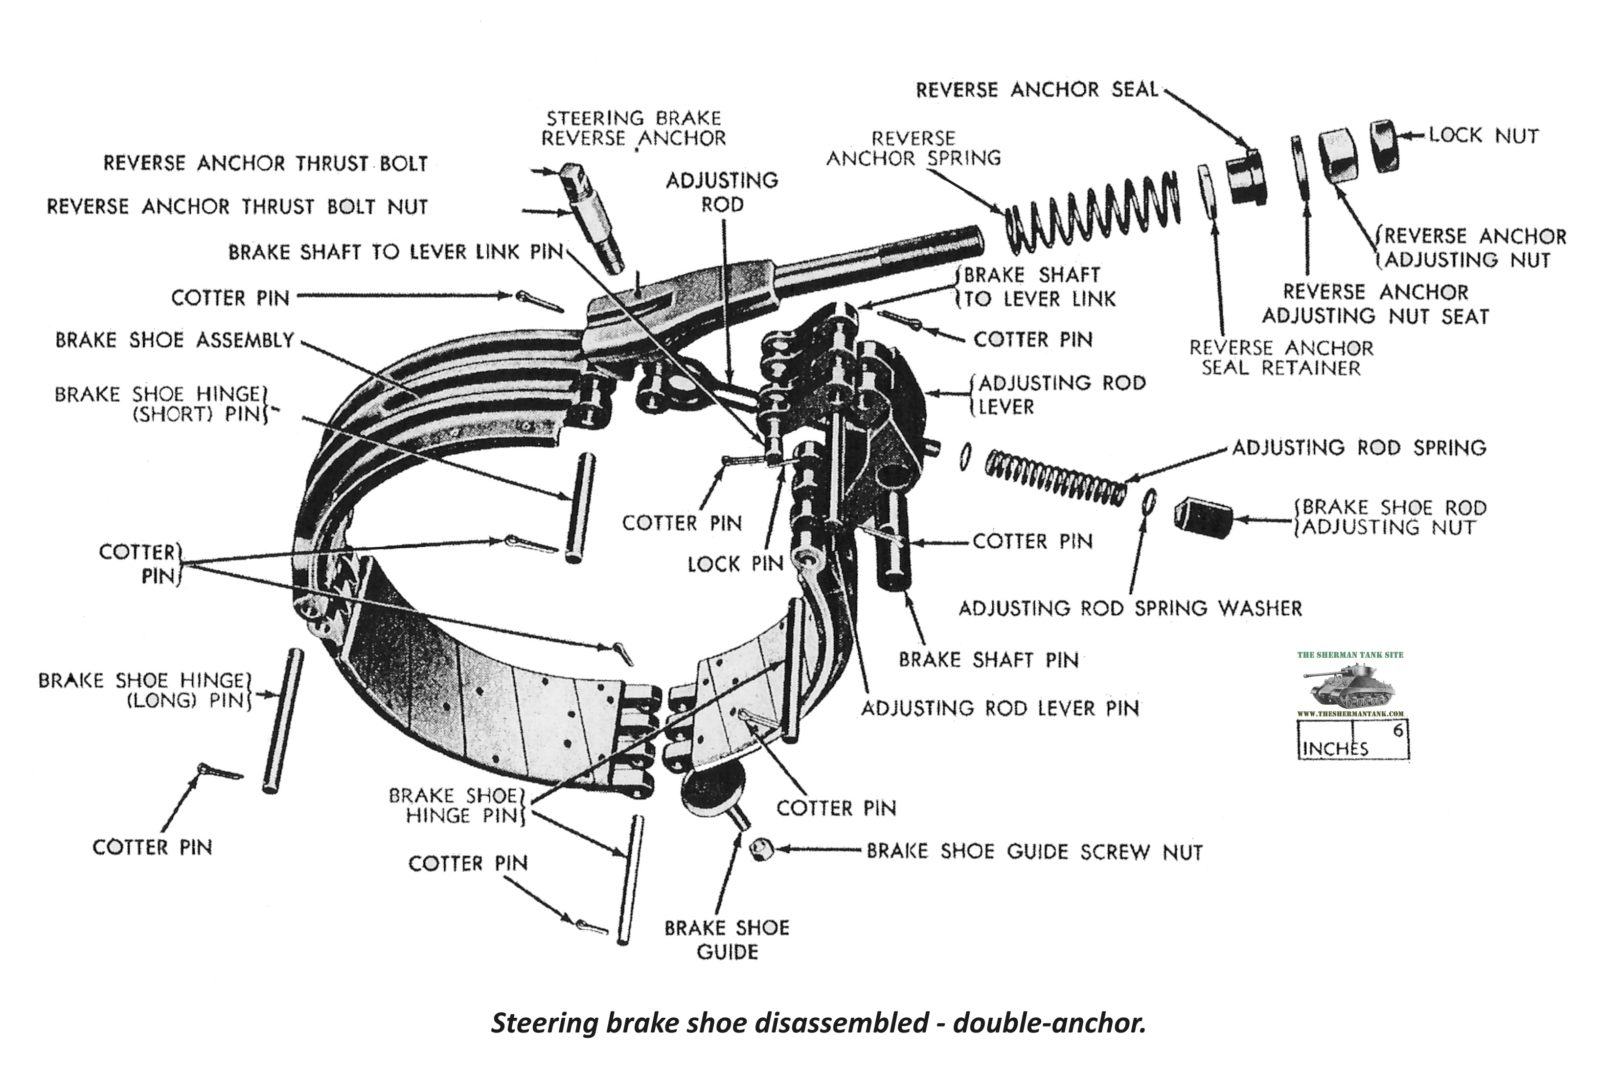 Advanced Tech The Sherman Tank Site Ignition Circuit Diagram For 1940 54 Willys 4 Cylinder Your M4 Steering Brakes Should Work Gentlen Easy If Not Heres What To Do And How It A Brand New Procedure Easier Clearer Completer